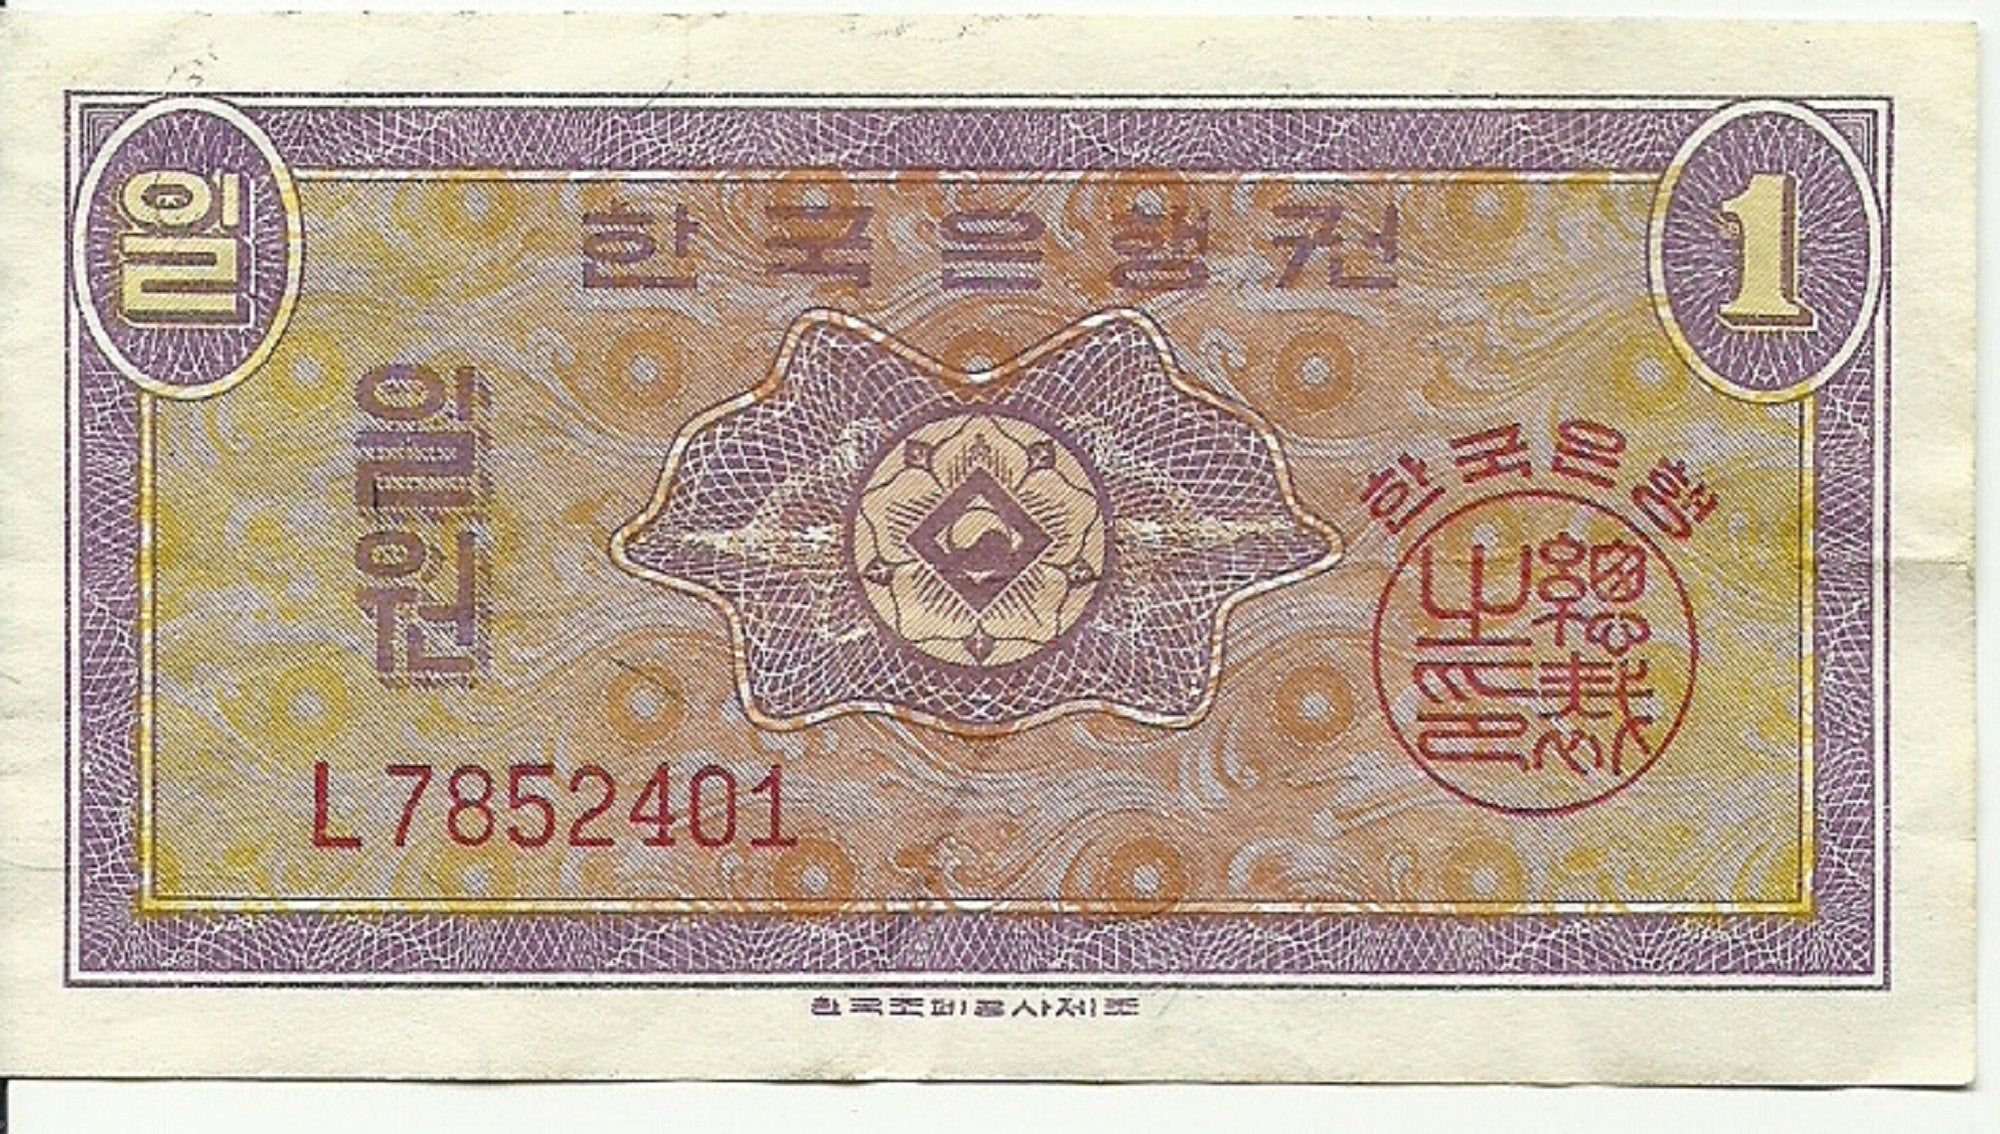 1962 korean 1 won paper currency small bill size 3 58 x